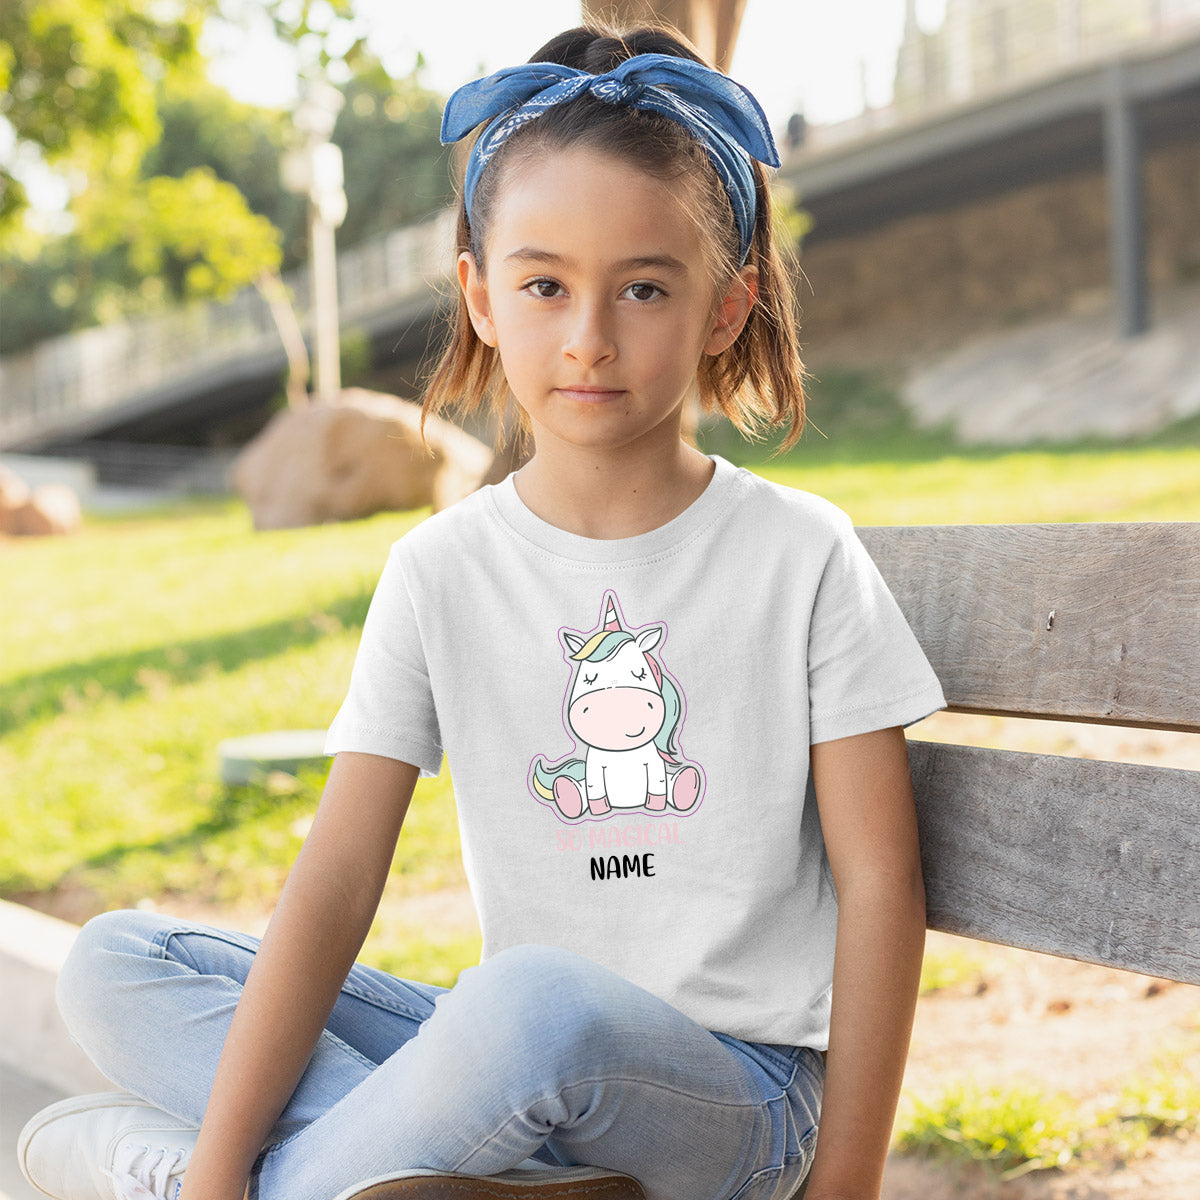 Sprinklecart Customized Name Printed So Magical Unicorn Poly-Cotton T Shirt for Kids (White)